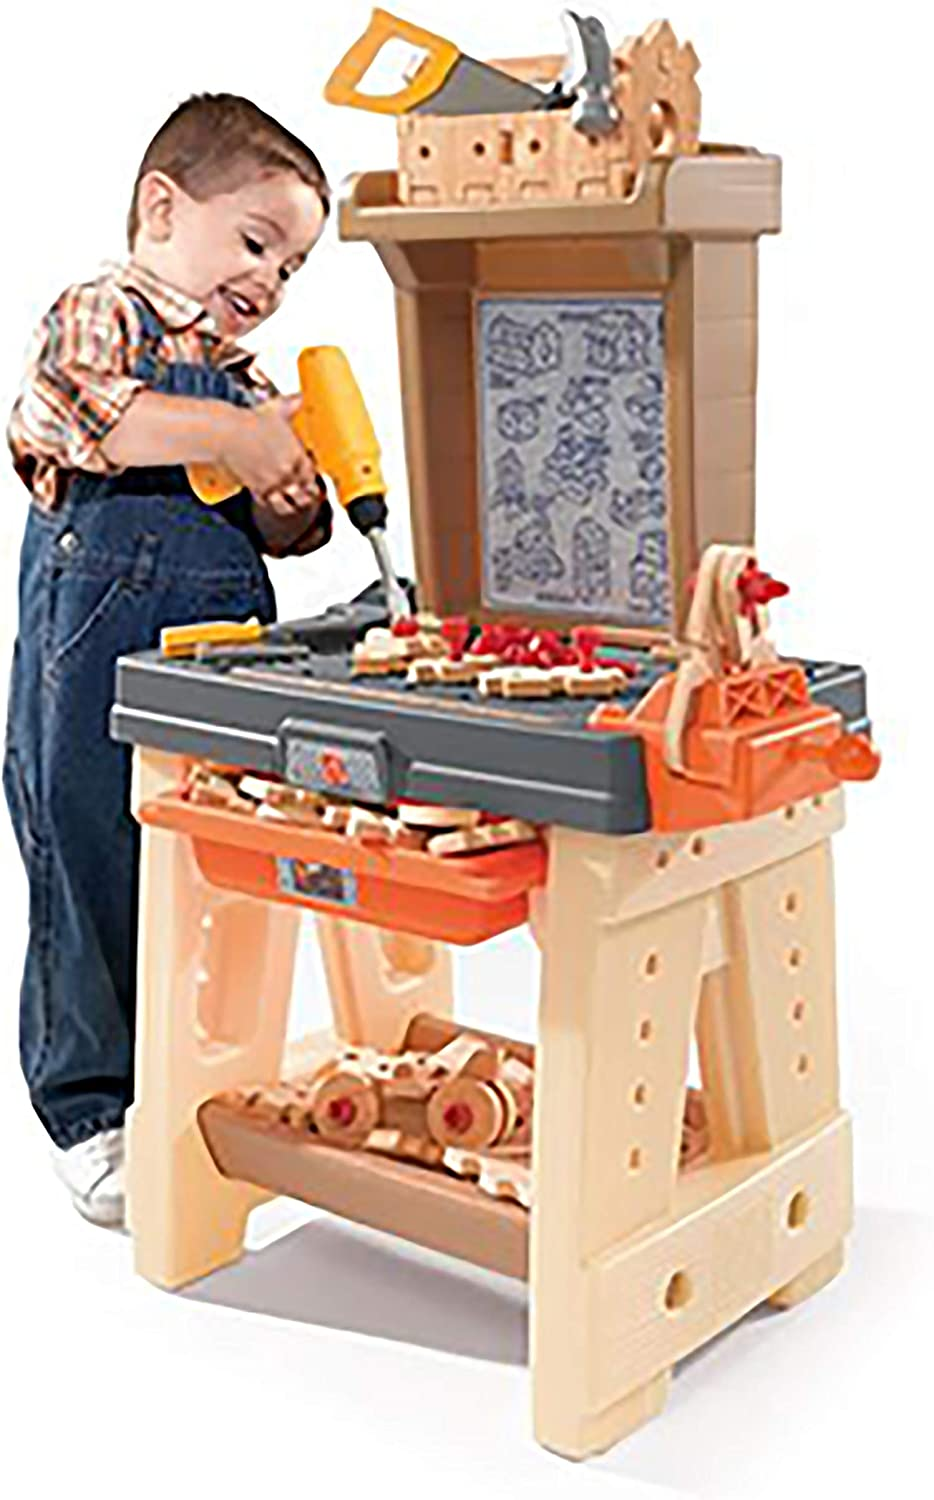 Top 14 Best Kids Tool Bench (2020 Reviews & Buying Guide) 11